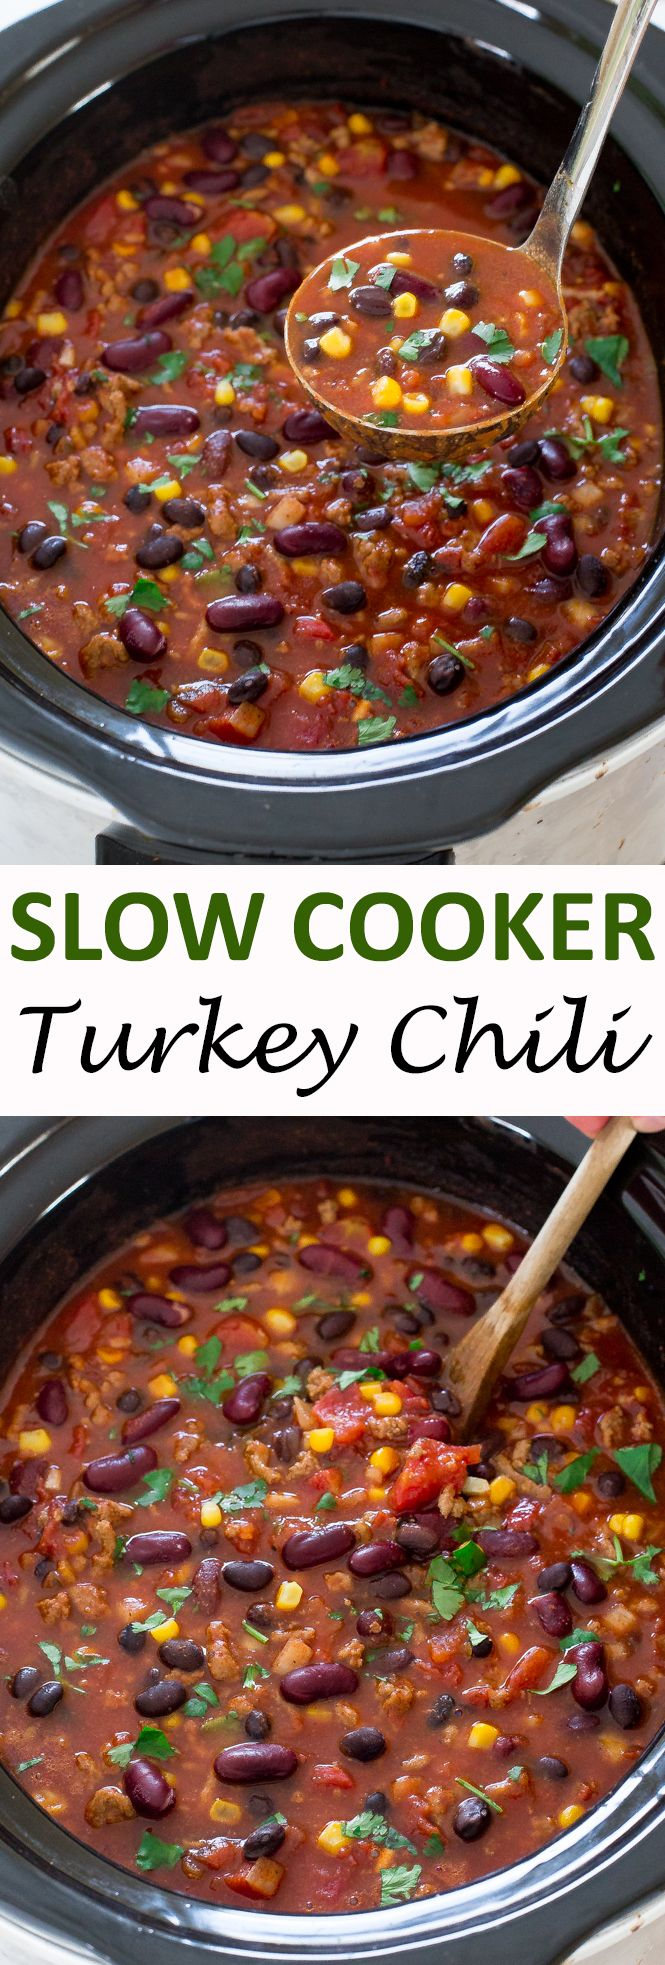 Slow Cooker Turkey Chili. The BEST turkey chili made healthier and in the slow cooker! Hearty, thick, filling and full of flavor!